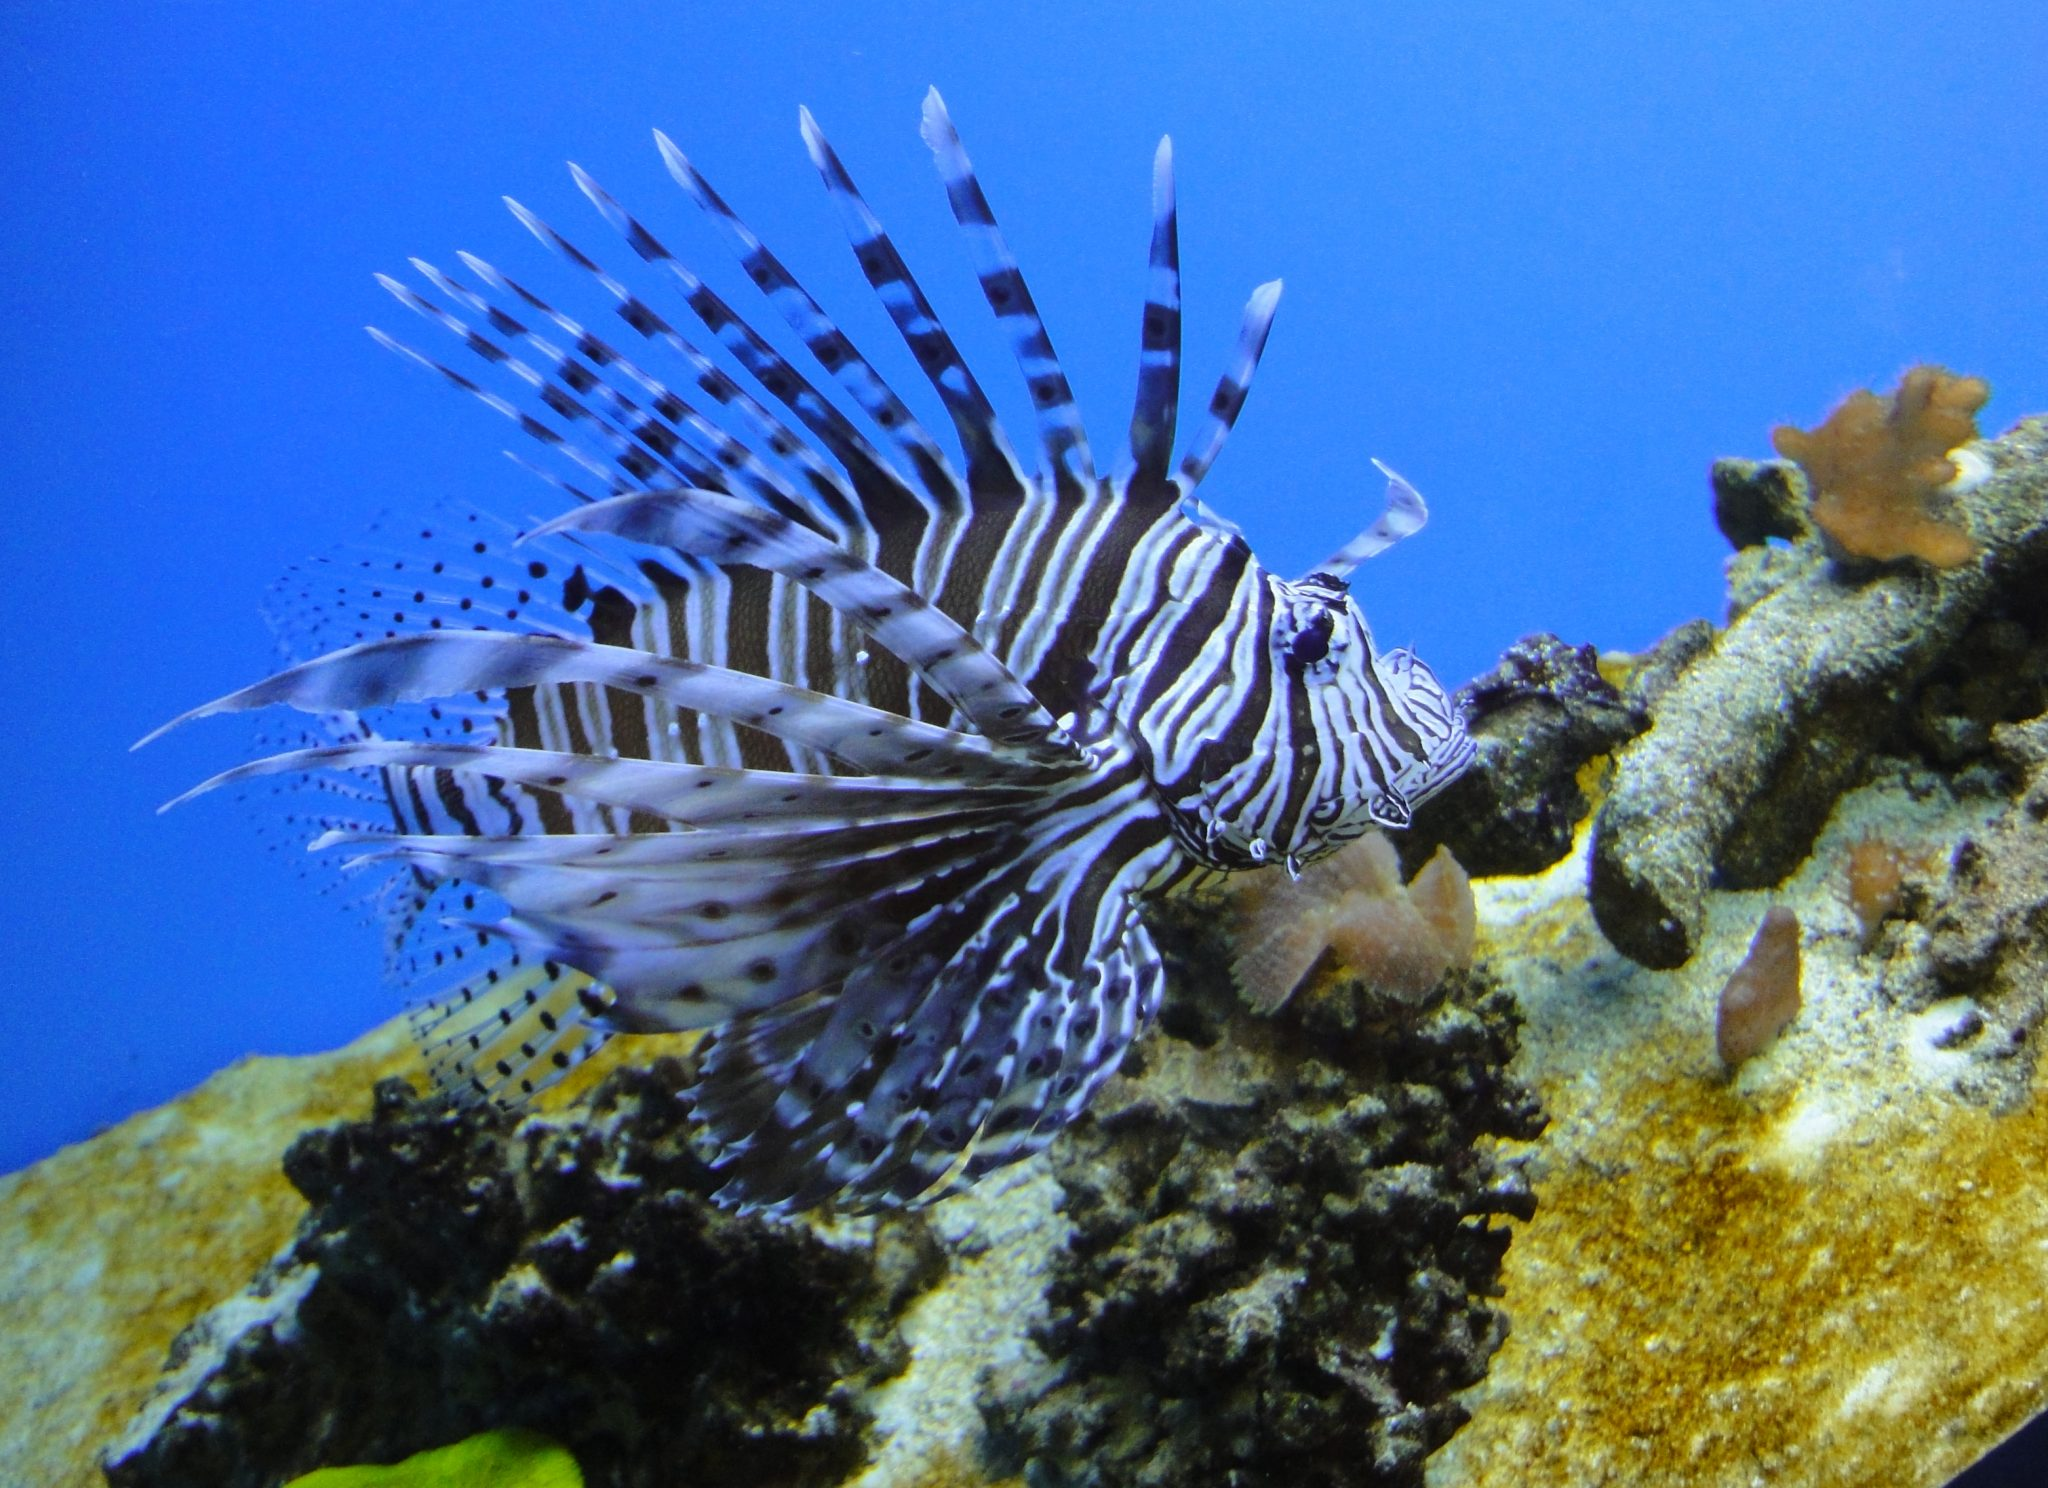 Pterois volitans, Red Lionfish, Common Lionfish, Featherfins, Ornate Butterfly-cod, Peacock Lionfish, Red Firefish, Scorpion-cod, Scorpion Volitans, Turkeyfish, Zebrafish